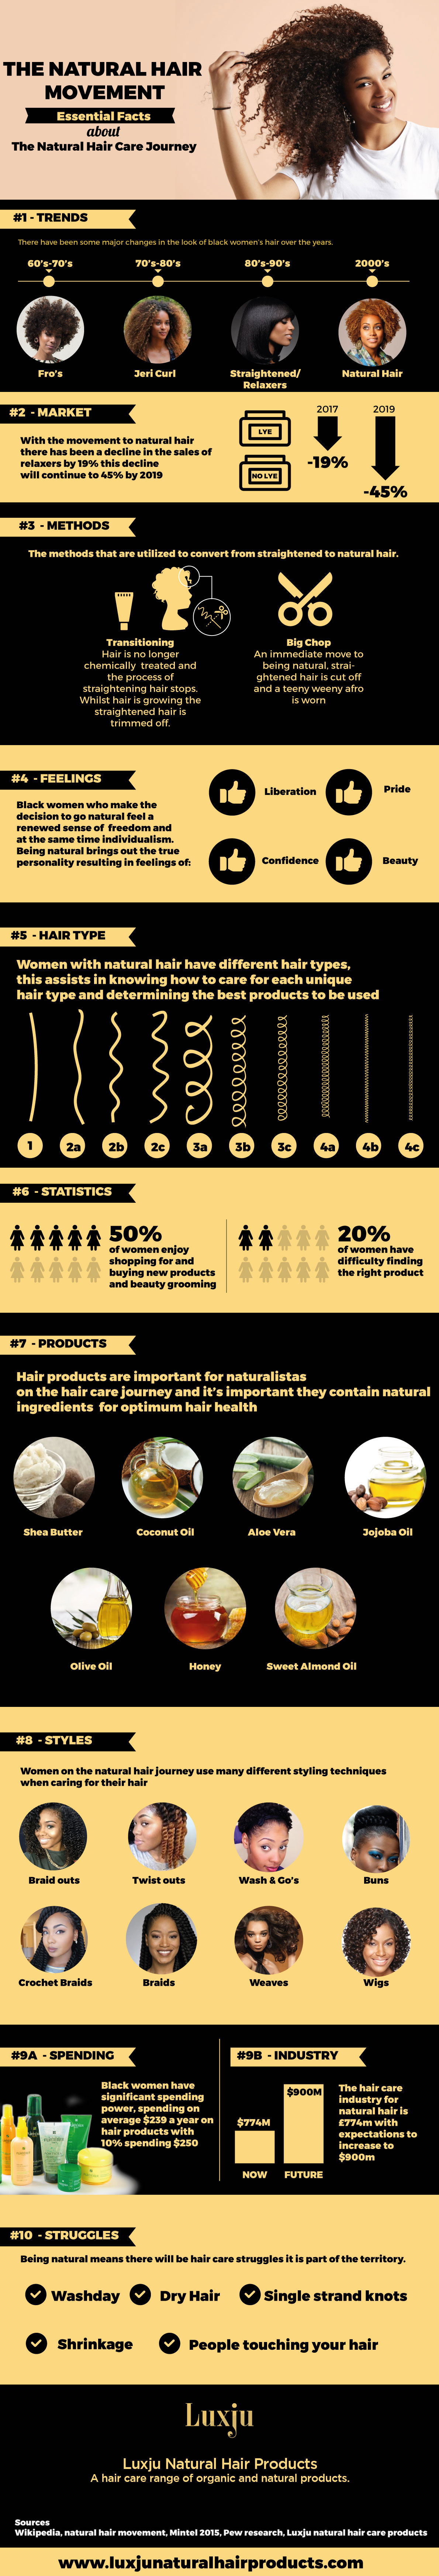 Infographic The Natural Hair Movement & The Natural Hair Care Journey